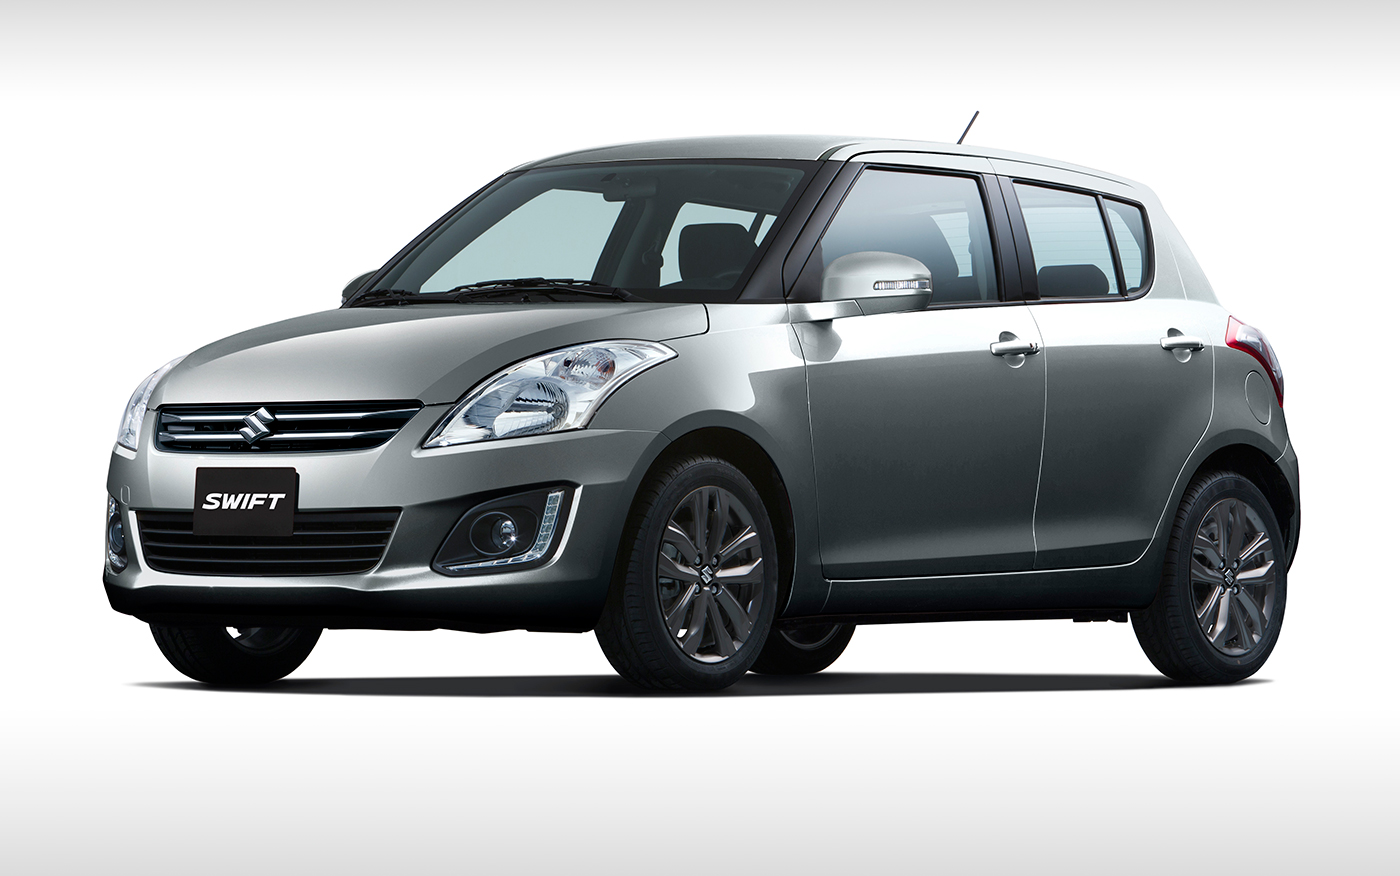 2015 Suzuki Swift Pricing And Specifications Photos 1 Of 9